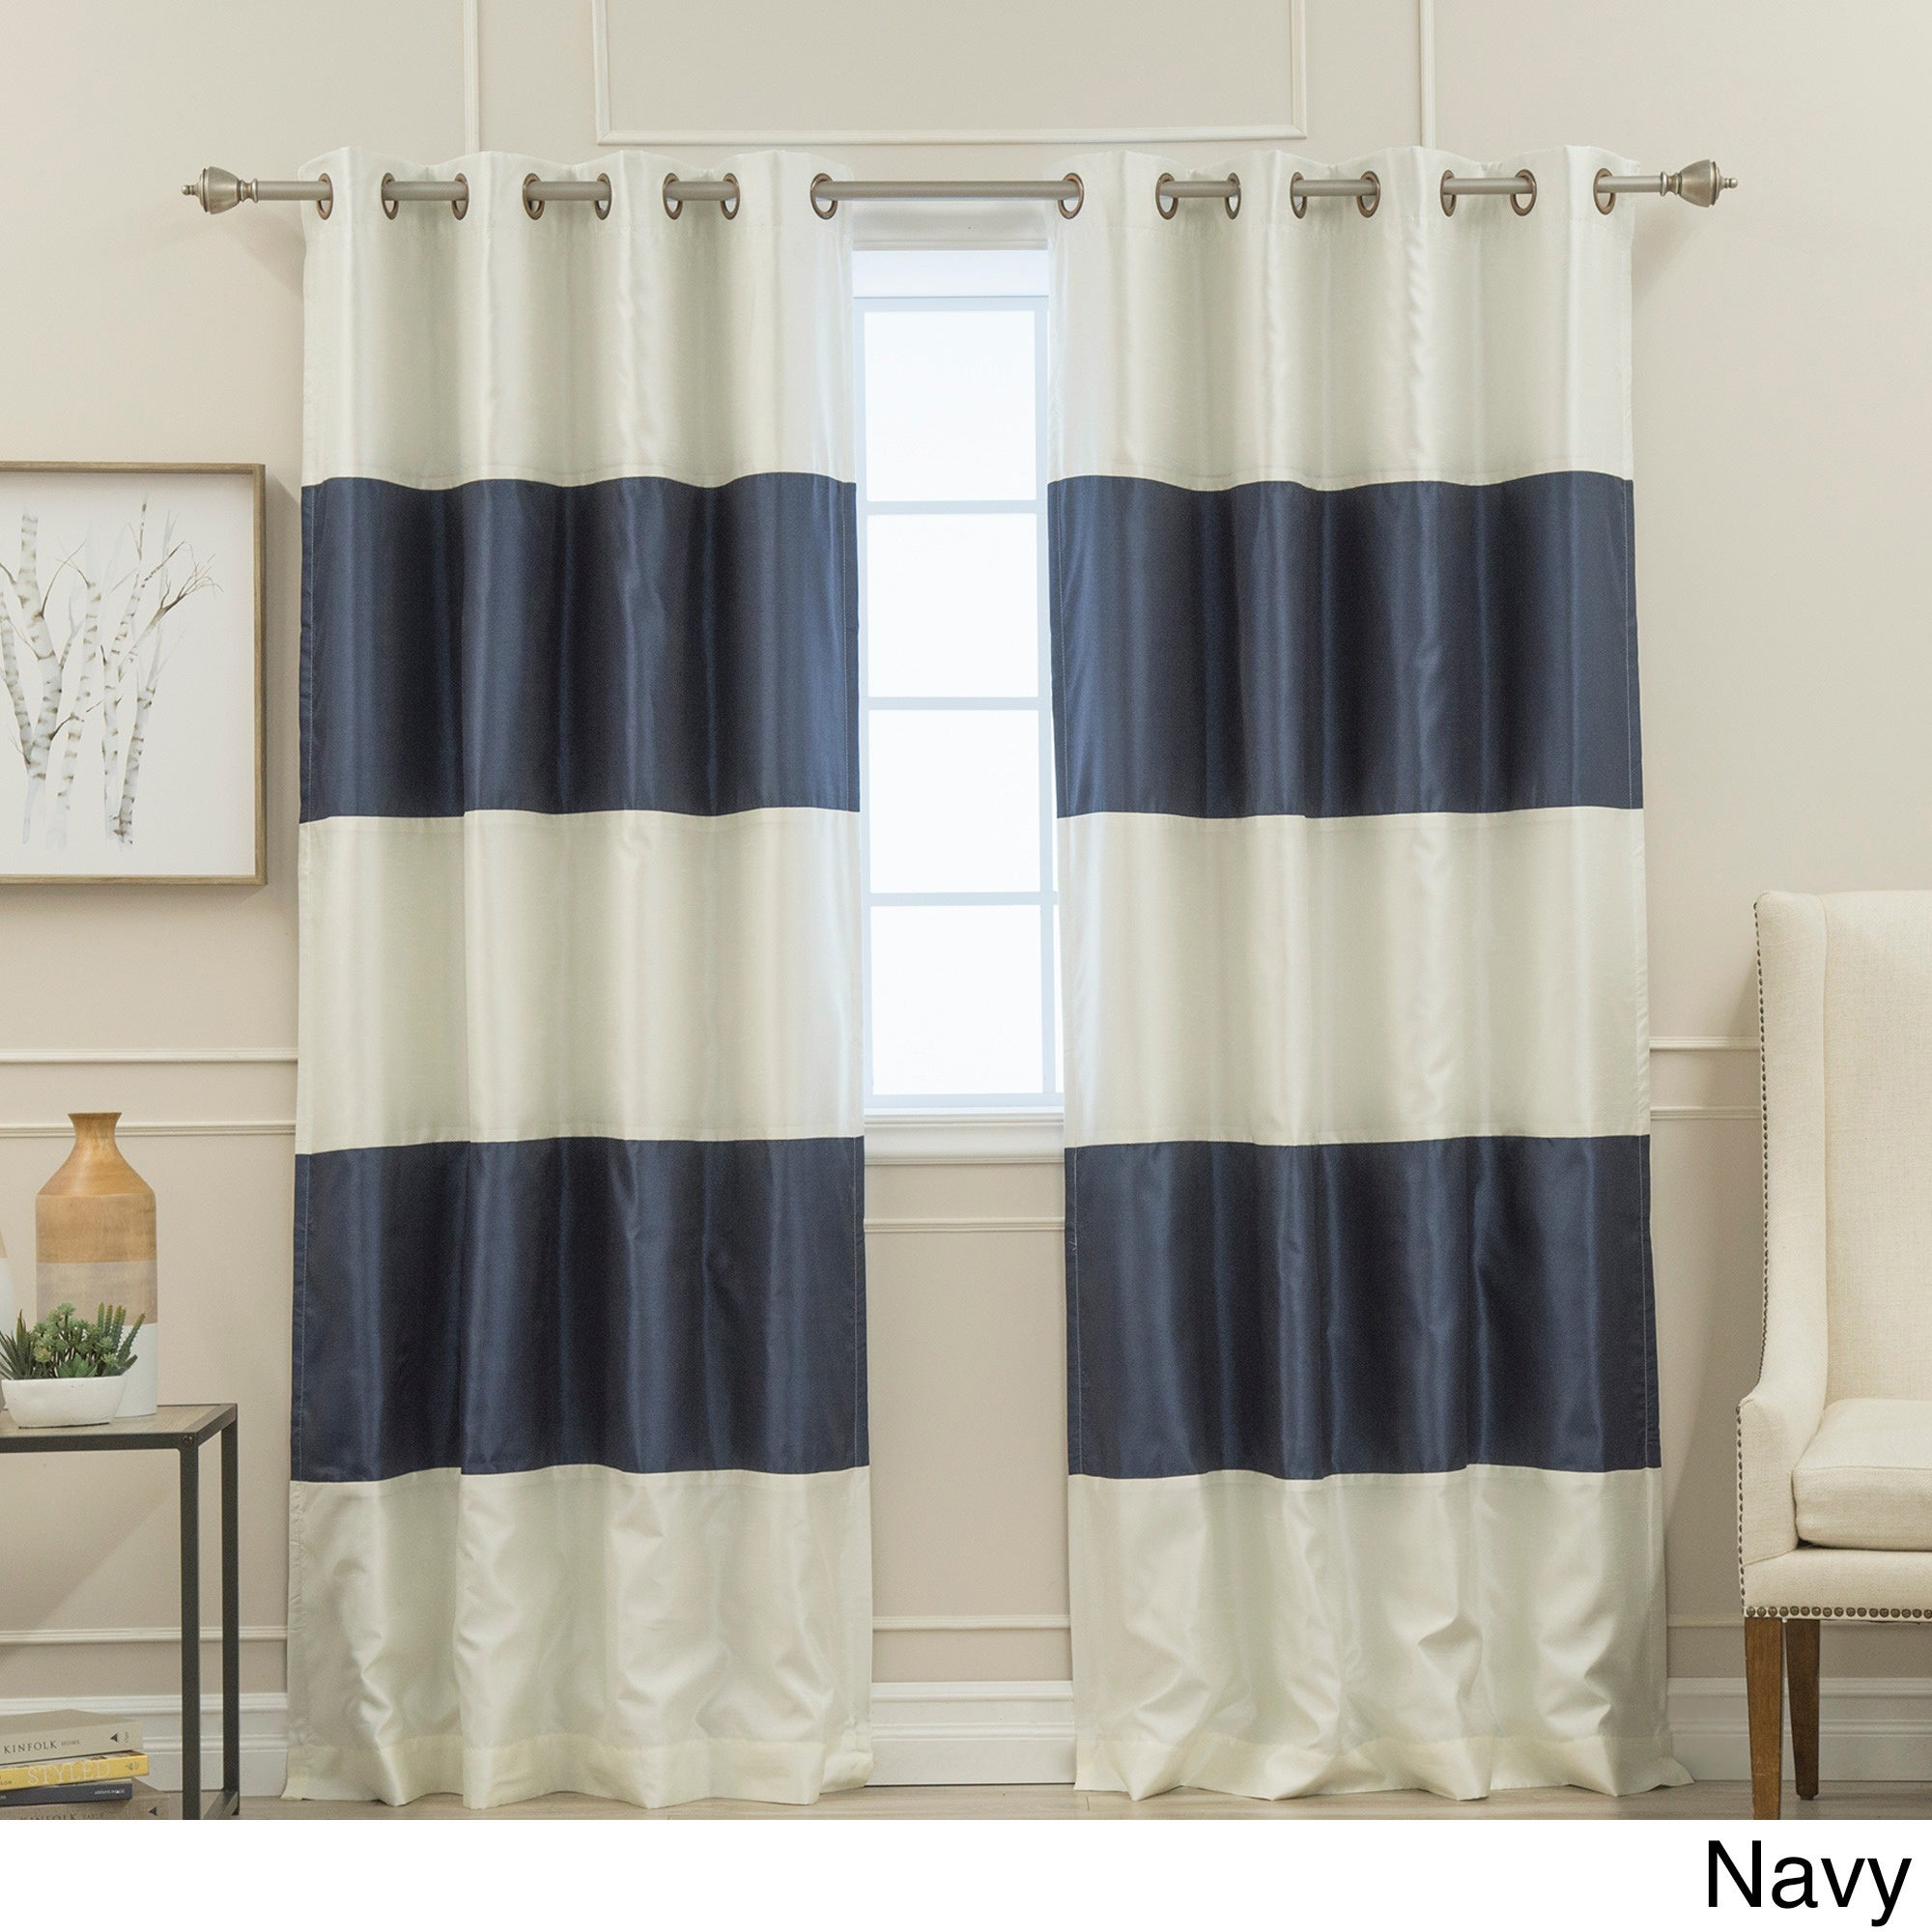 pocket more curtain hei category rod top styles home treatments panel blackout darcy wid qlt curtains grommet store decor window bed valance drapes